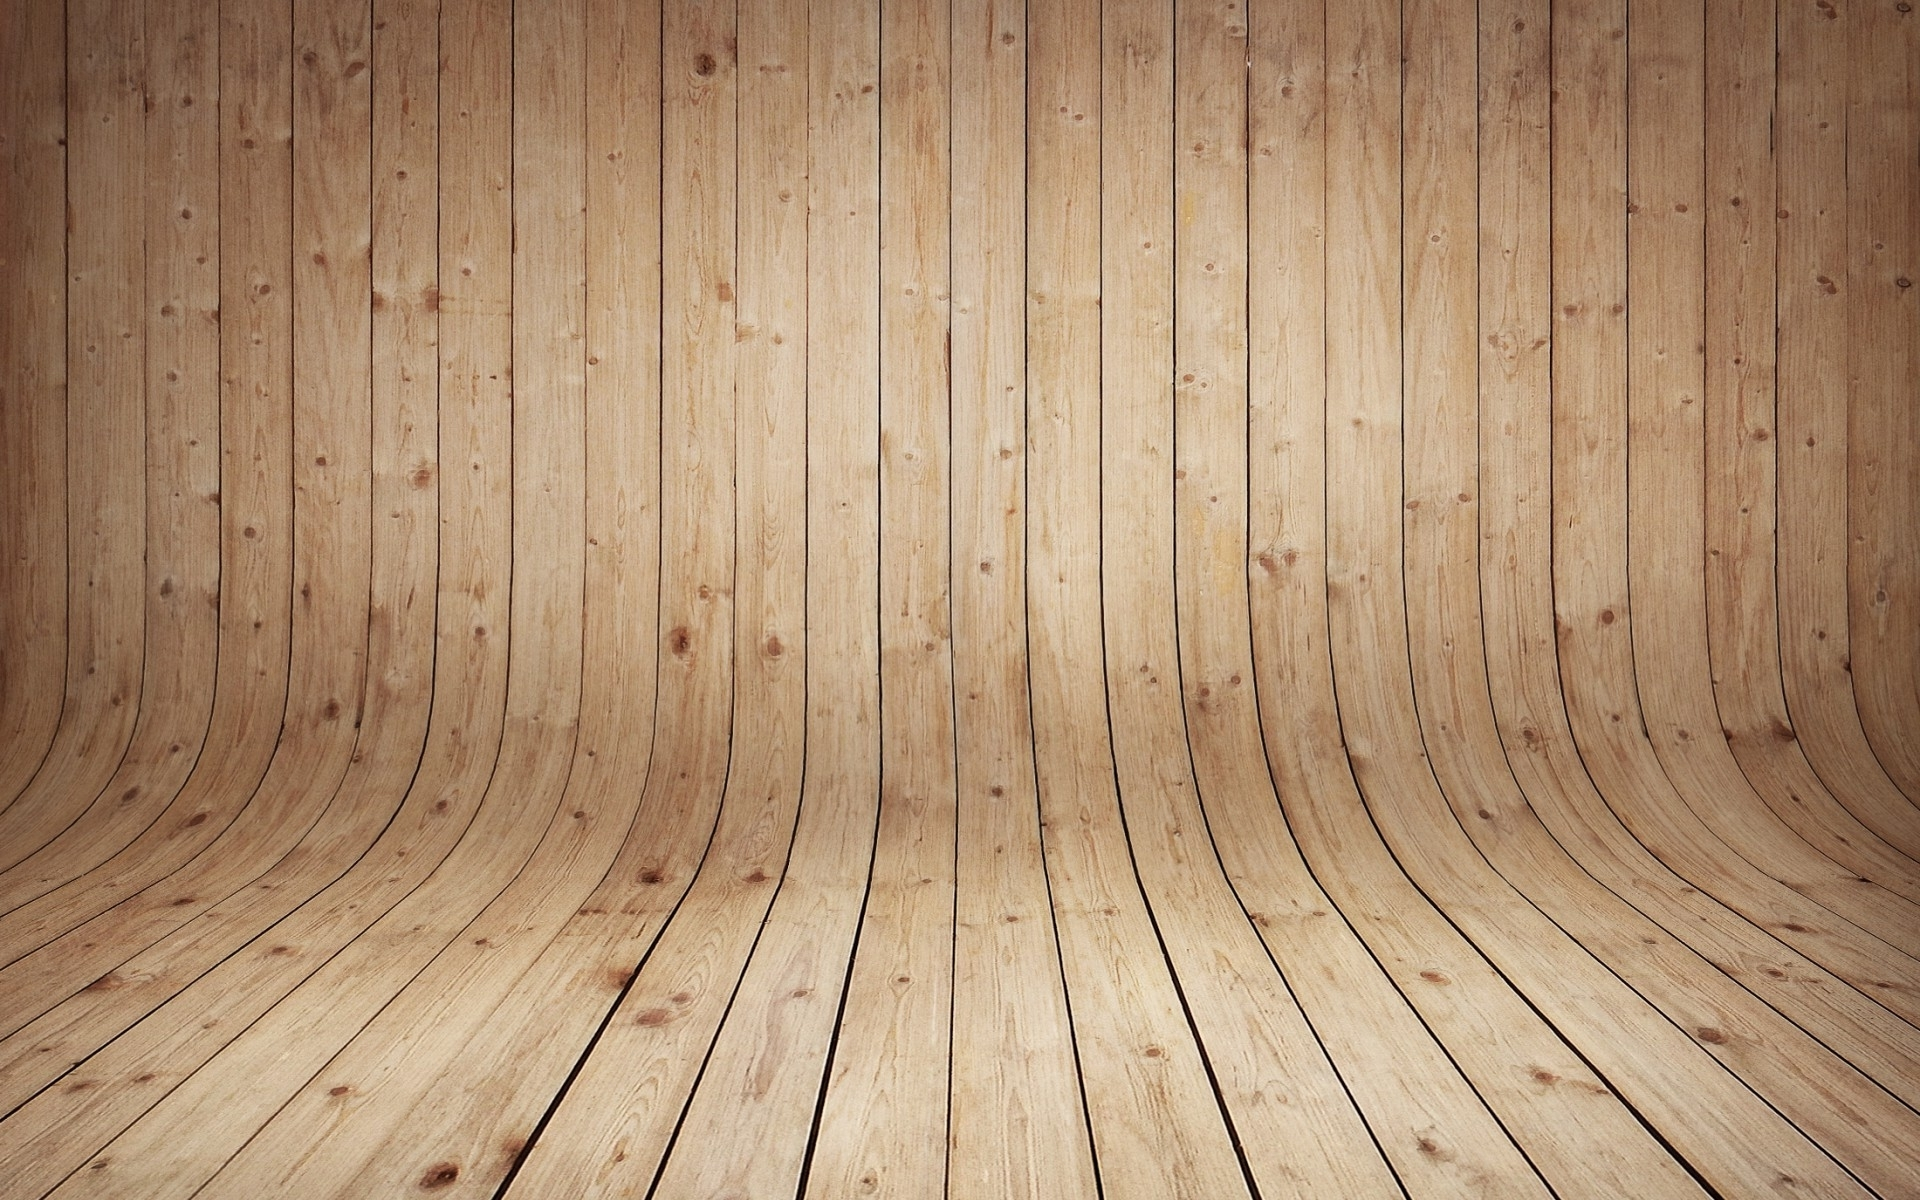 wooden-curved-floor-24697